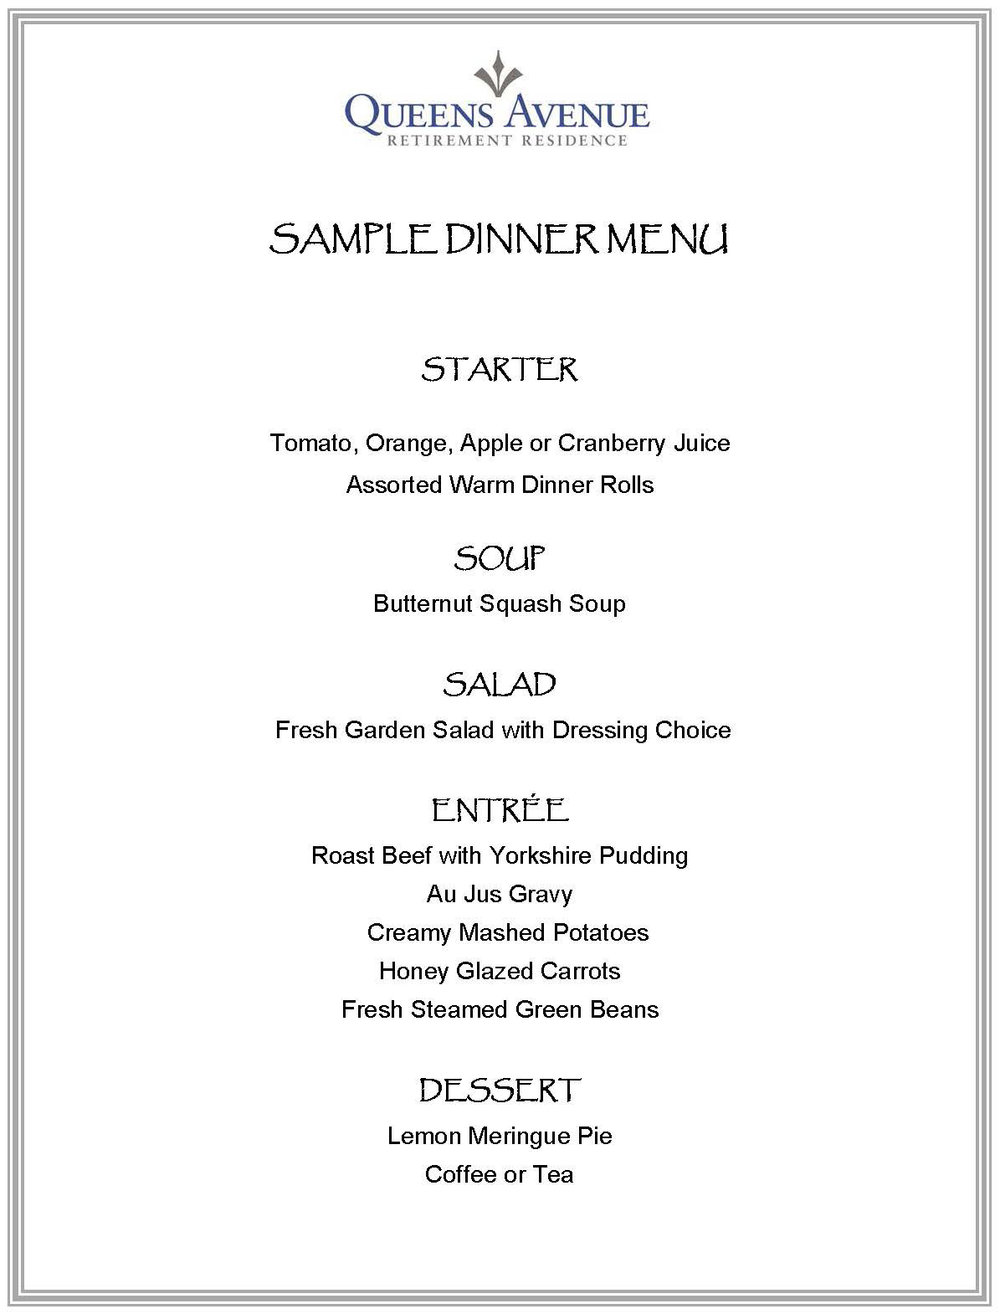 SAMPLE DINNER MENU 2017 cropped.jpg